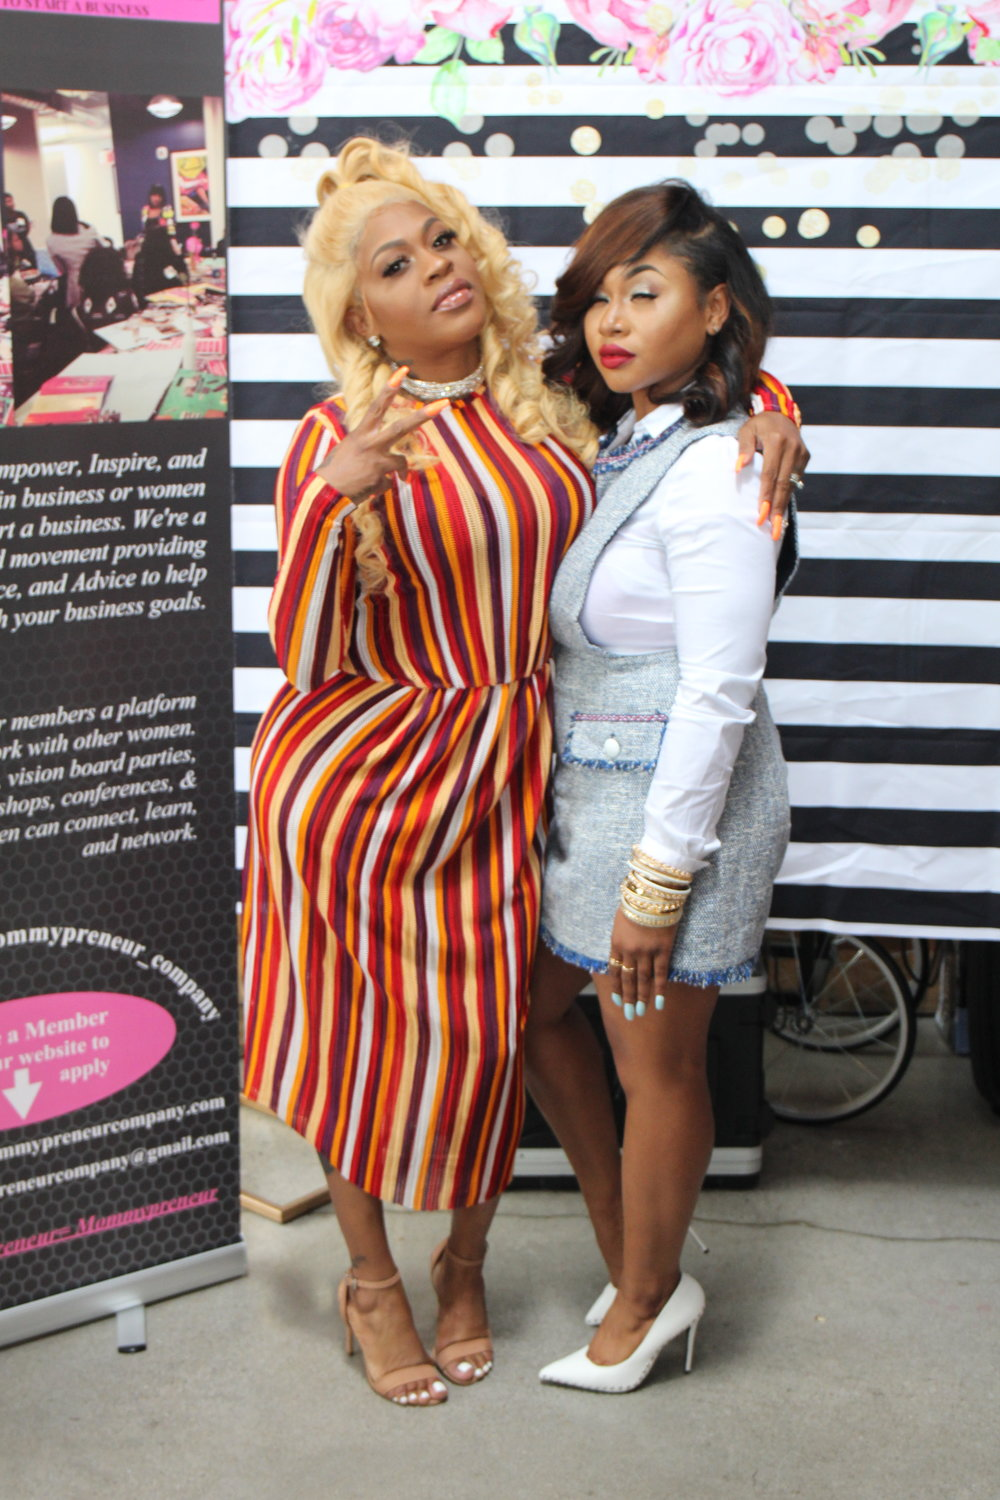 Celebrity Guest (Lil Mo) & Owner OF The Mommypreneur Company (Sieria)